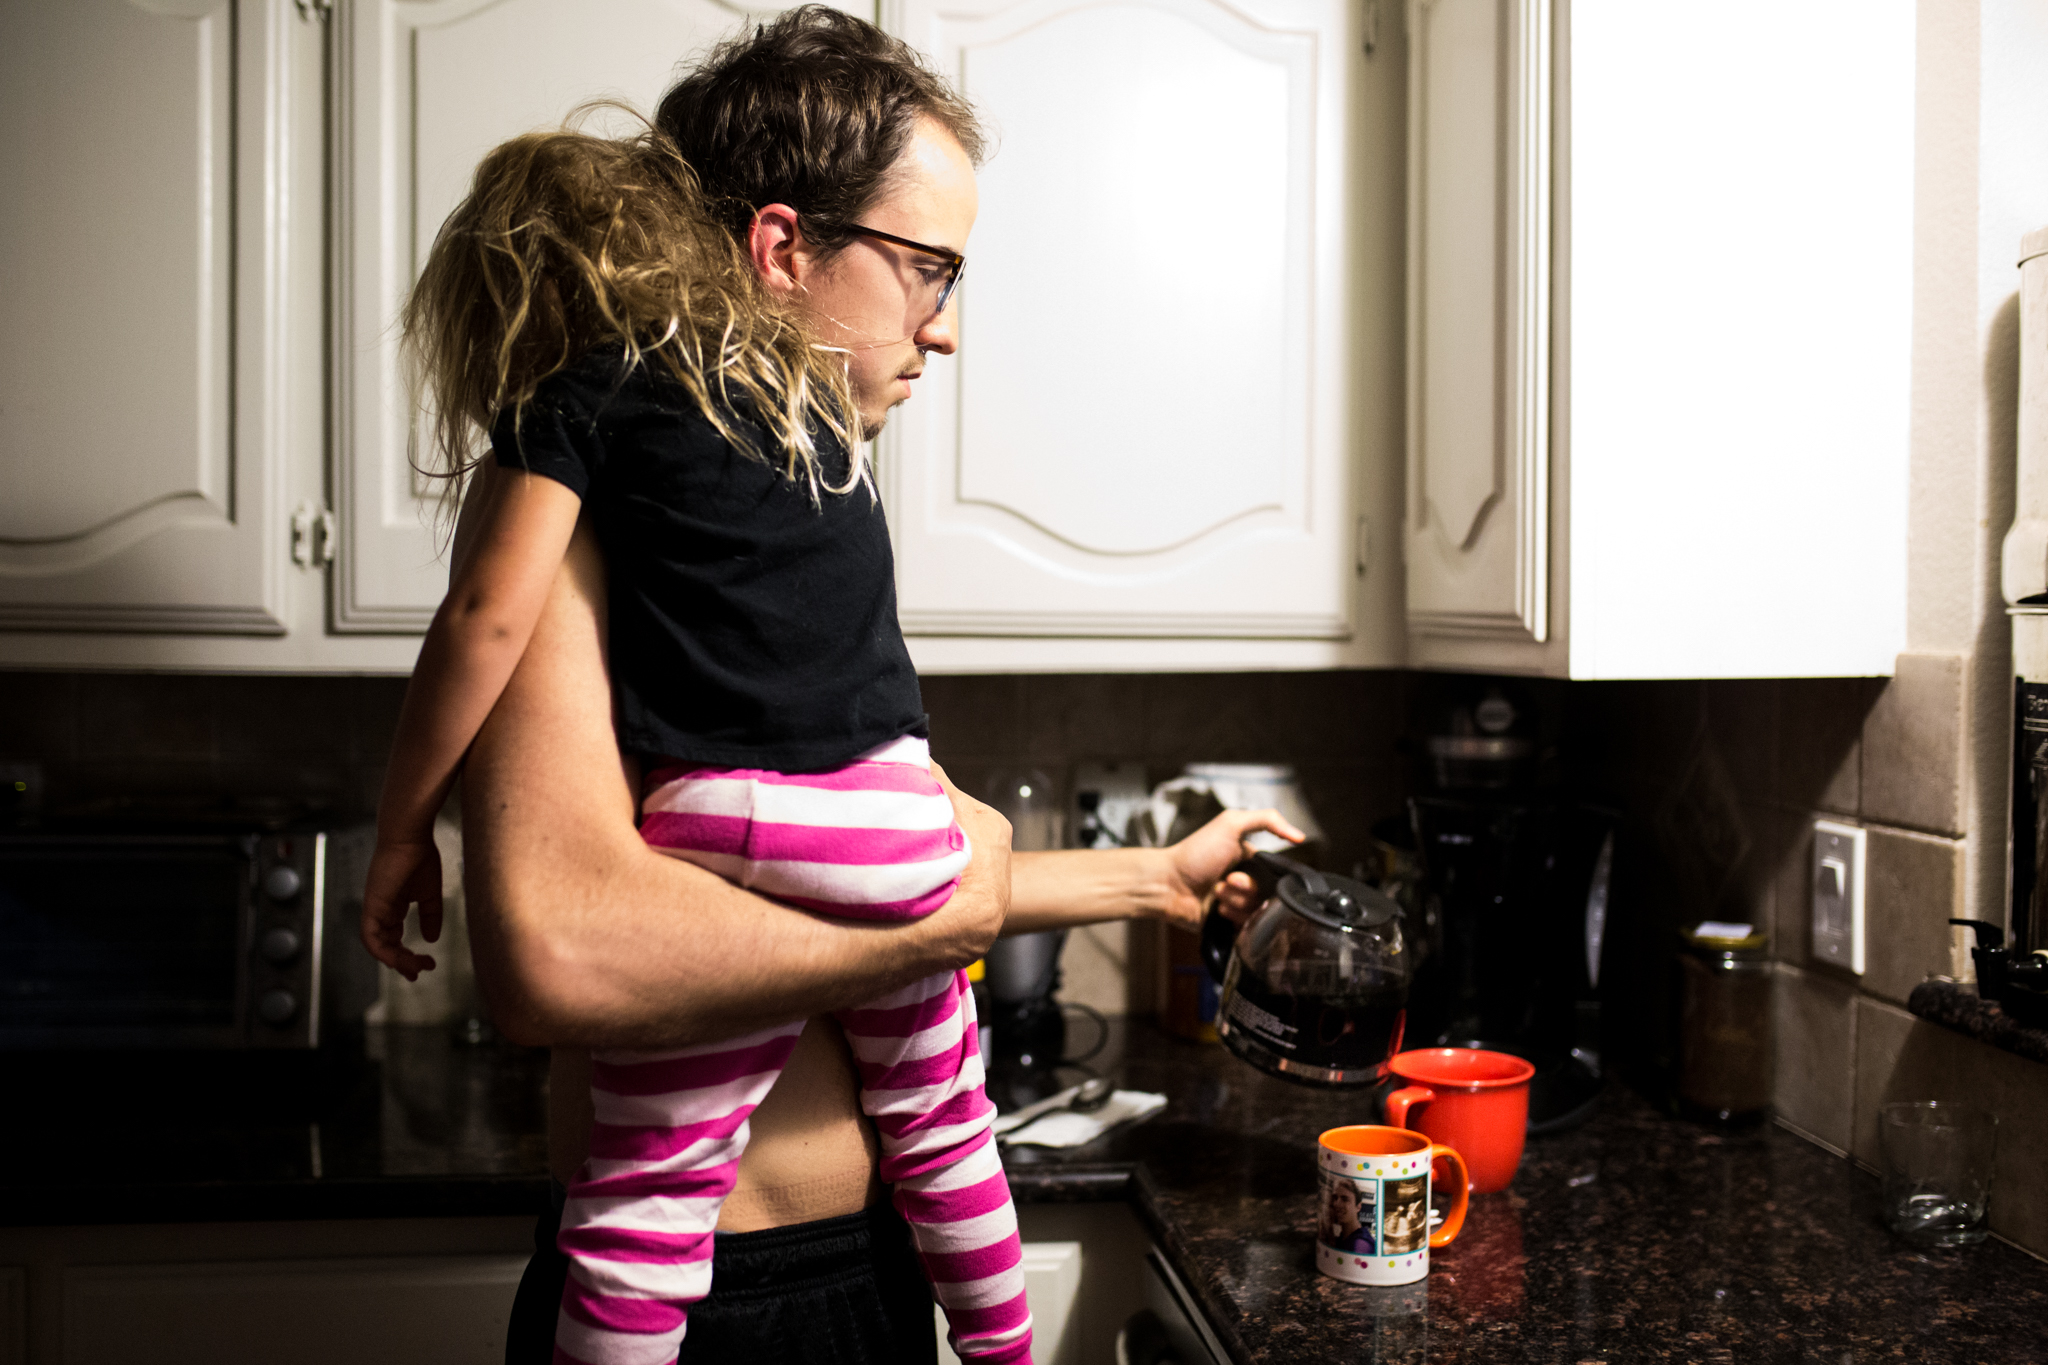 Dallas photographer Lawren Rose Photography captures a photograph of a dad holding his daughter in his arms while pouring a cup of coffee super early in the morning during a Day In The Life session